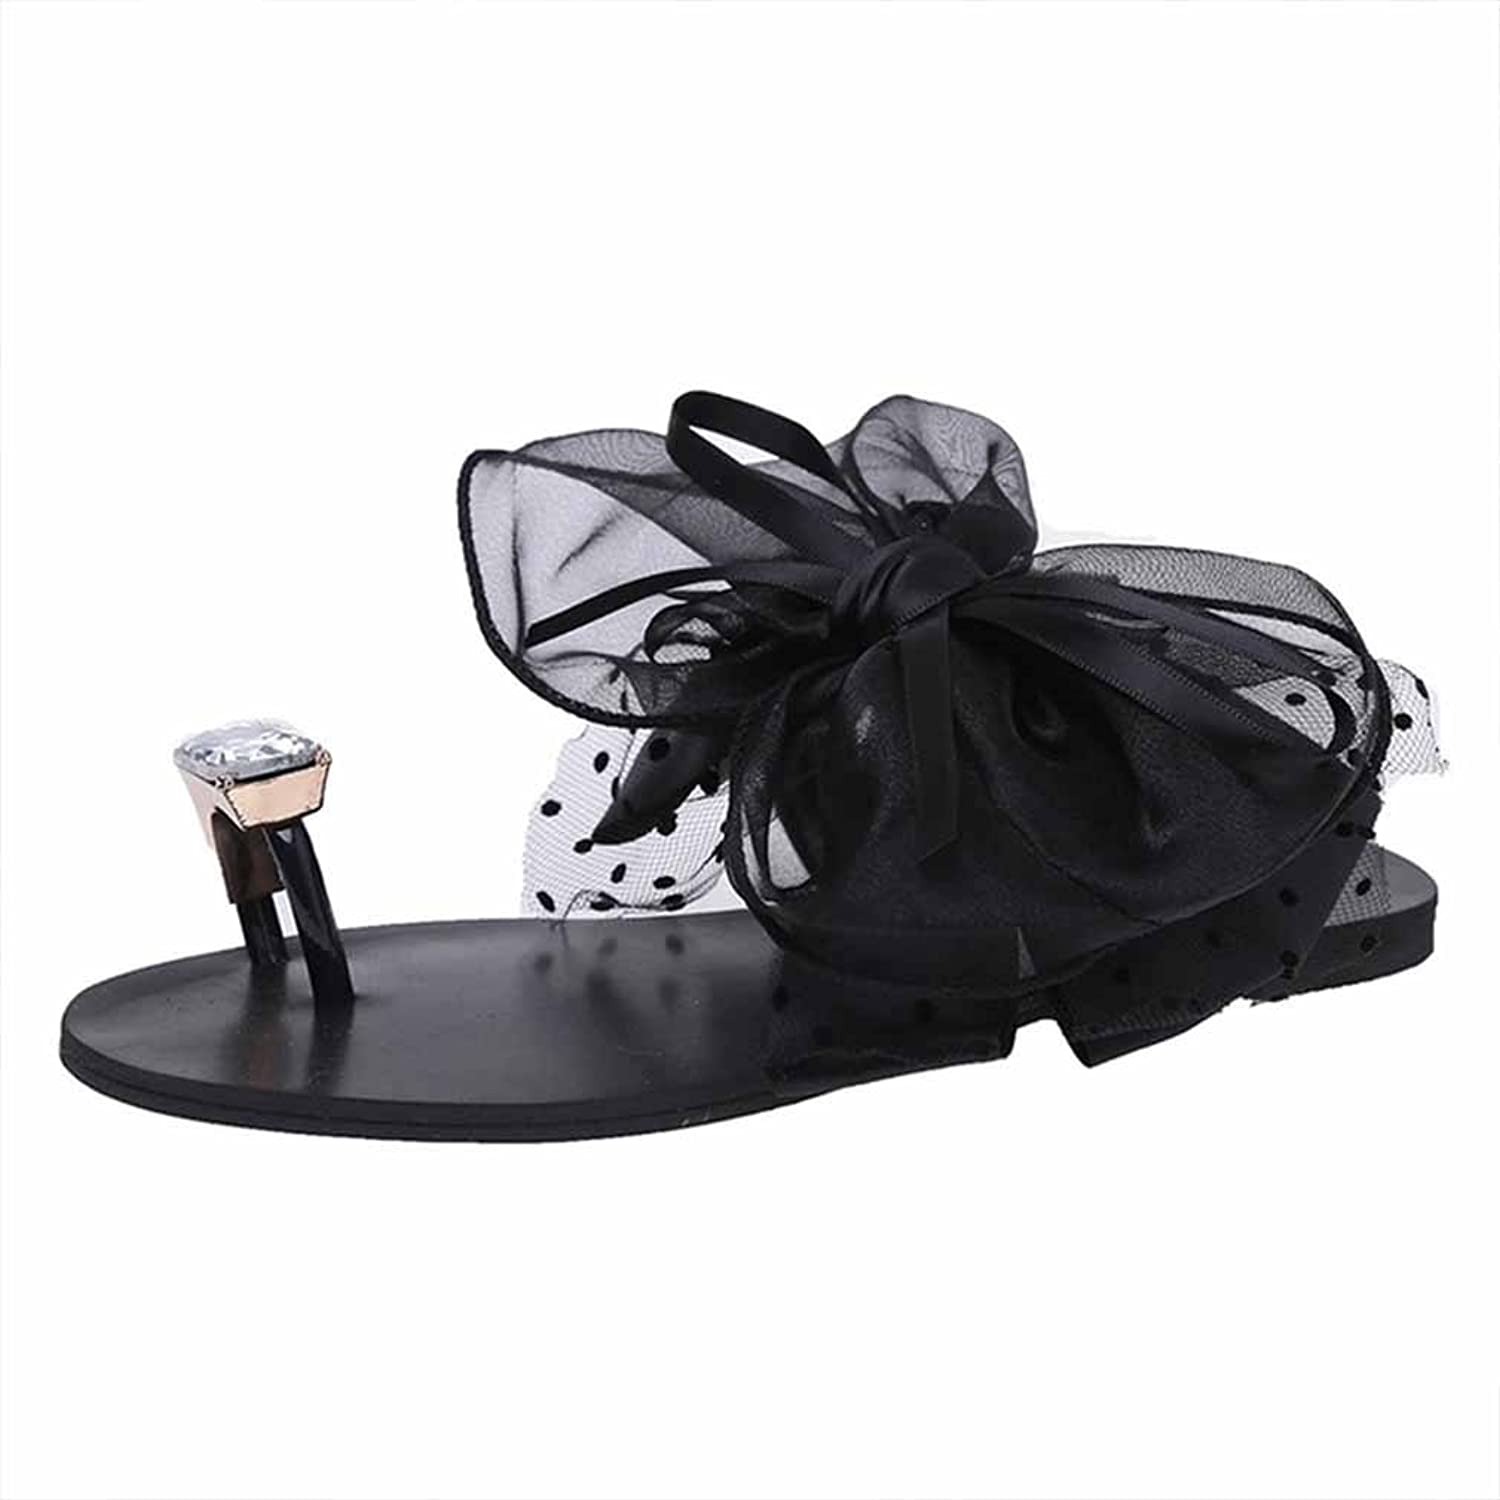 Kyle Walsh Pa Women Thongs Sandals,Casual Flower Toe Ring Flat Flip Flops Sandals Loafers Beach shoes